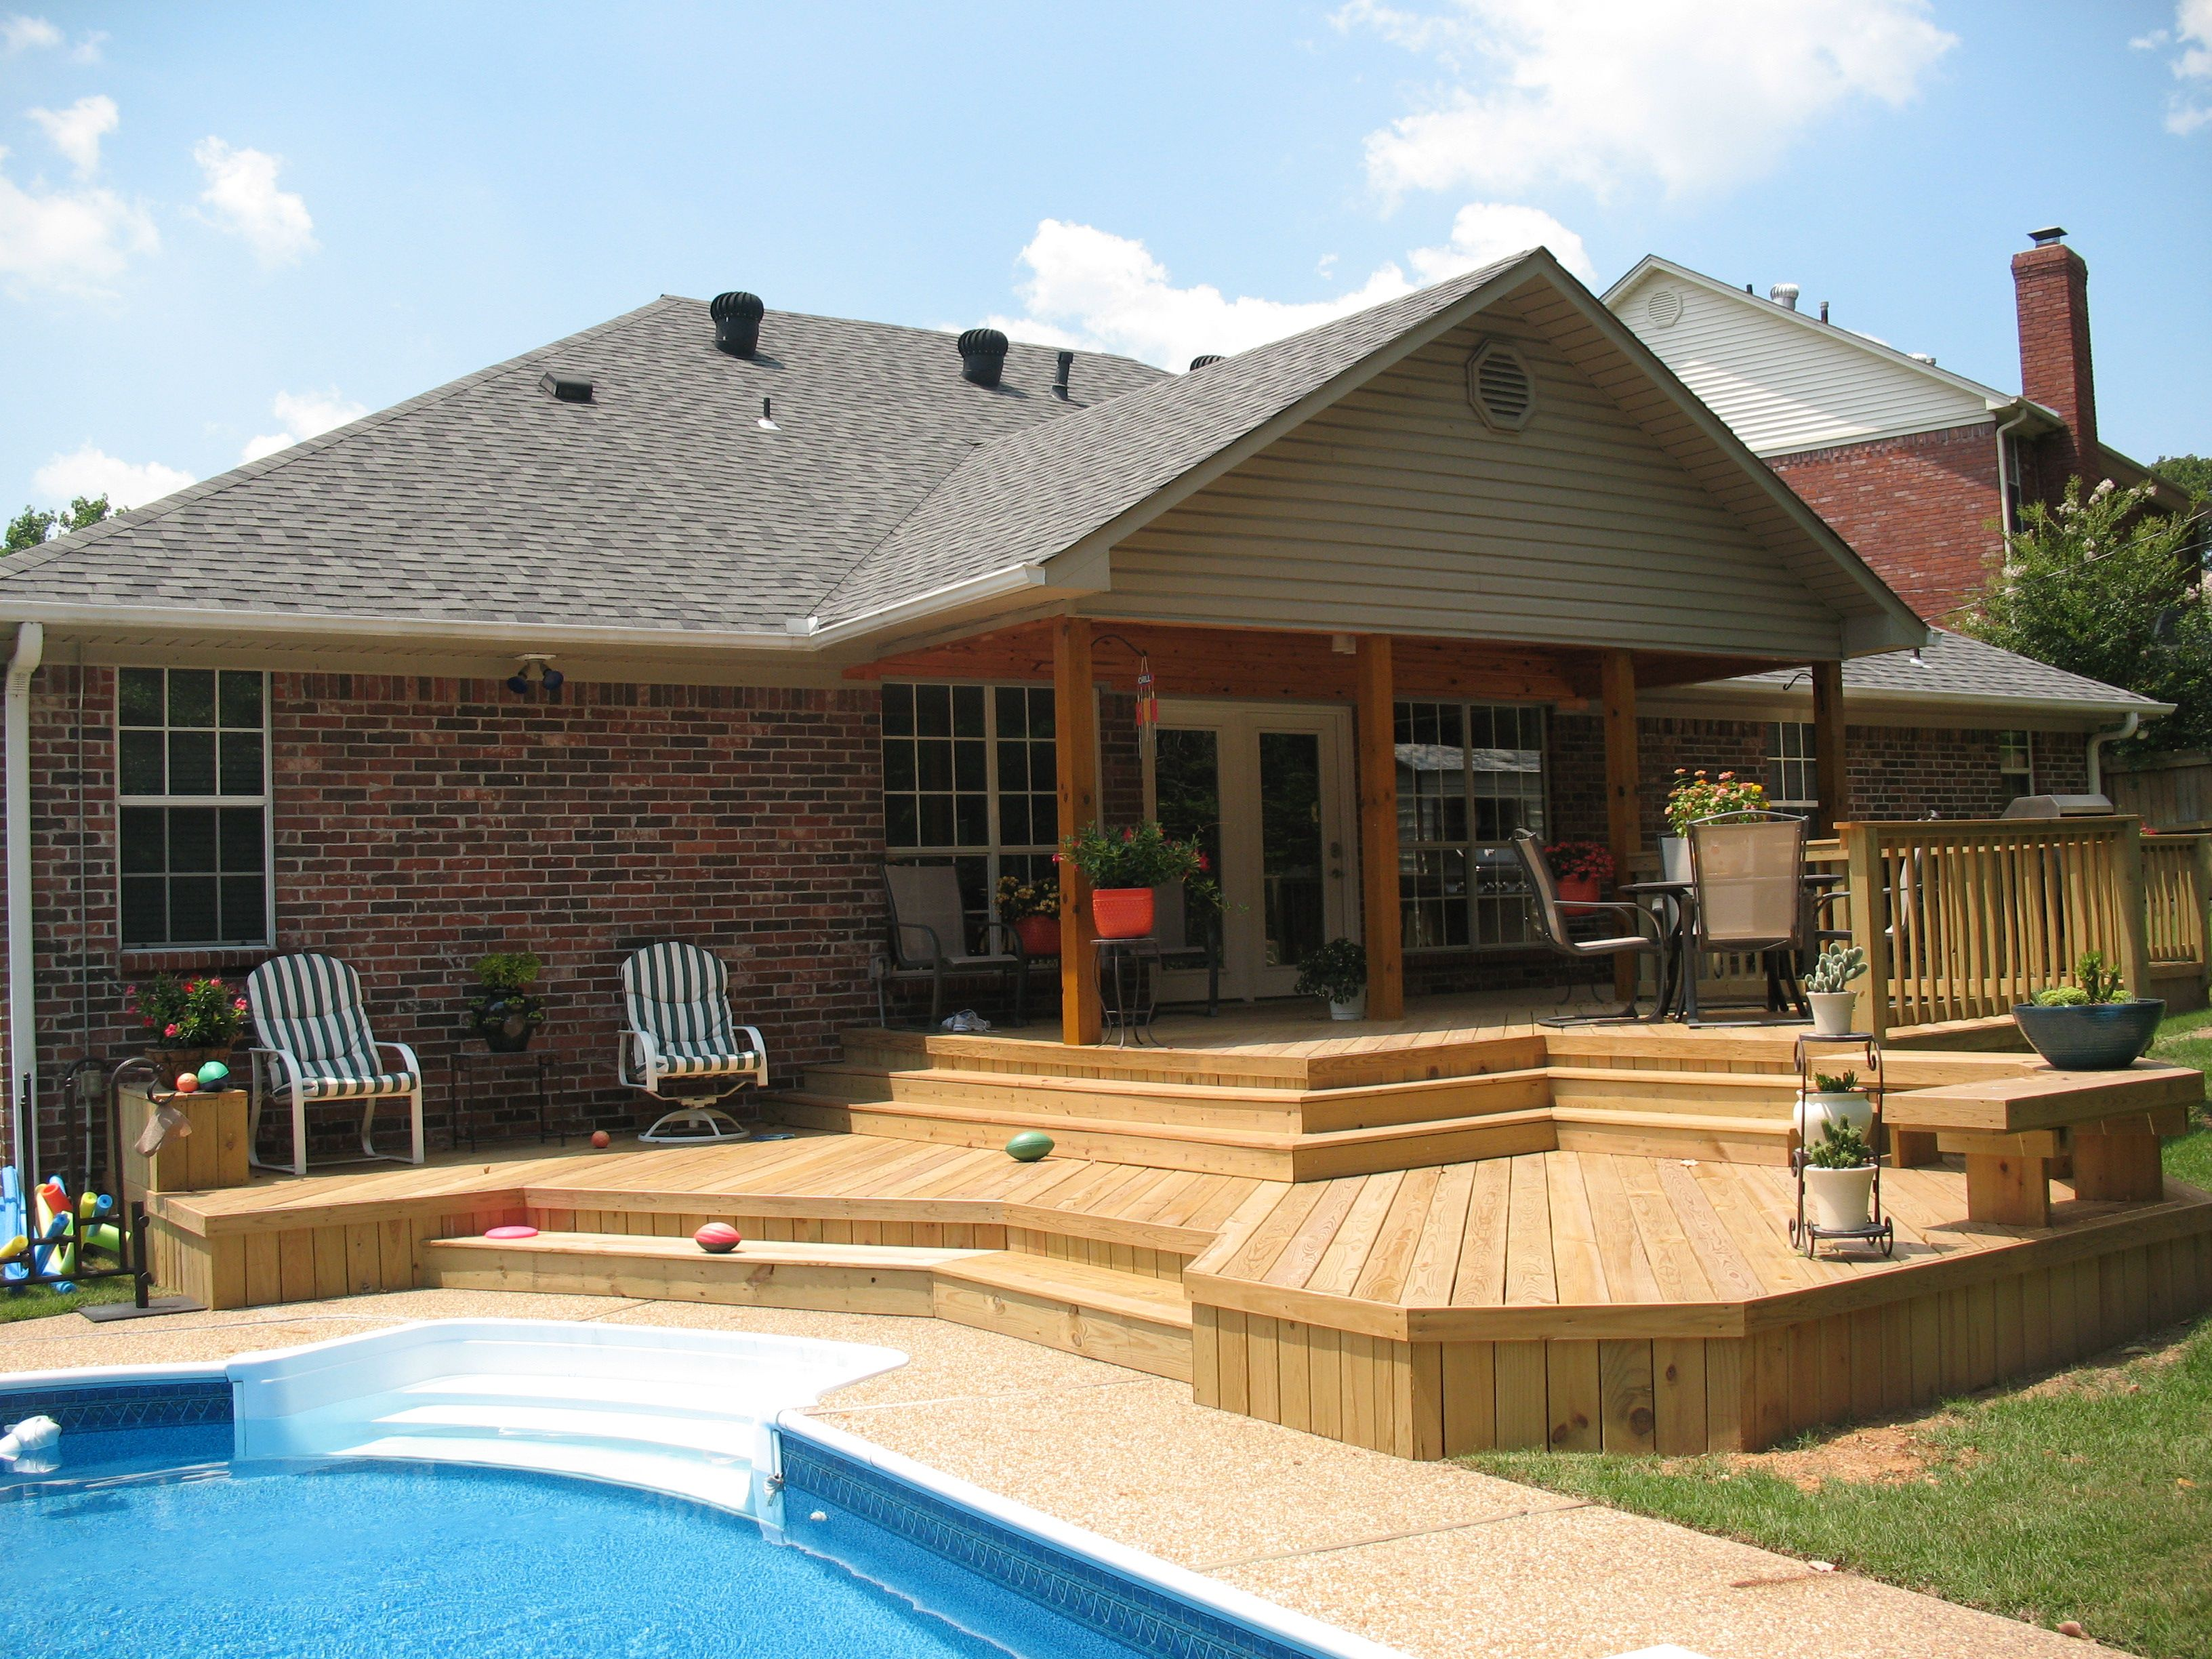 Deck design ideas pool deck multi level deck deck for Pool deck design plans